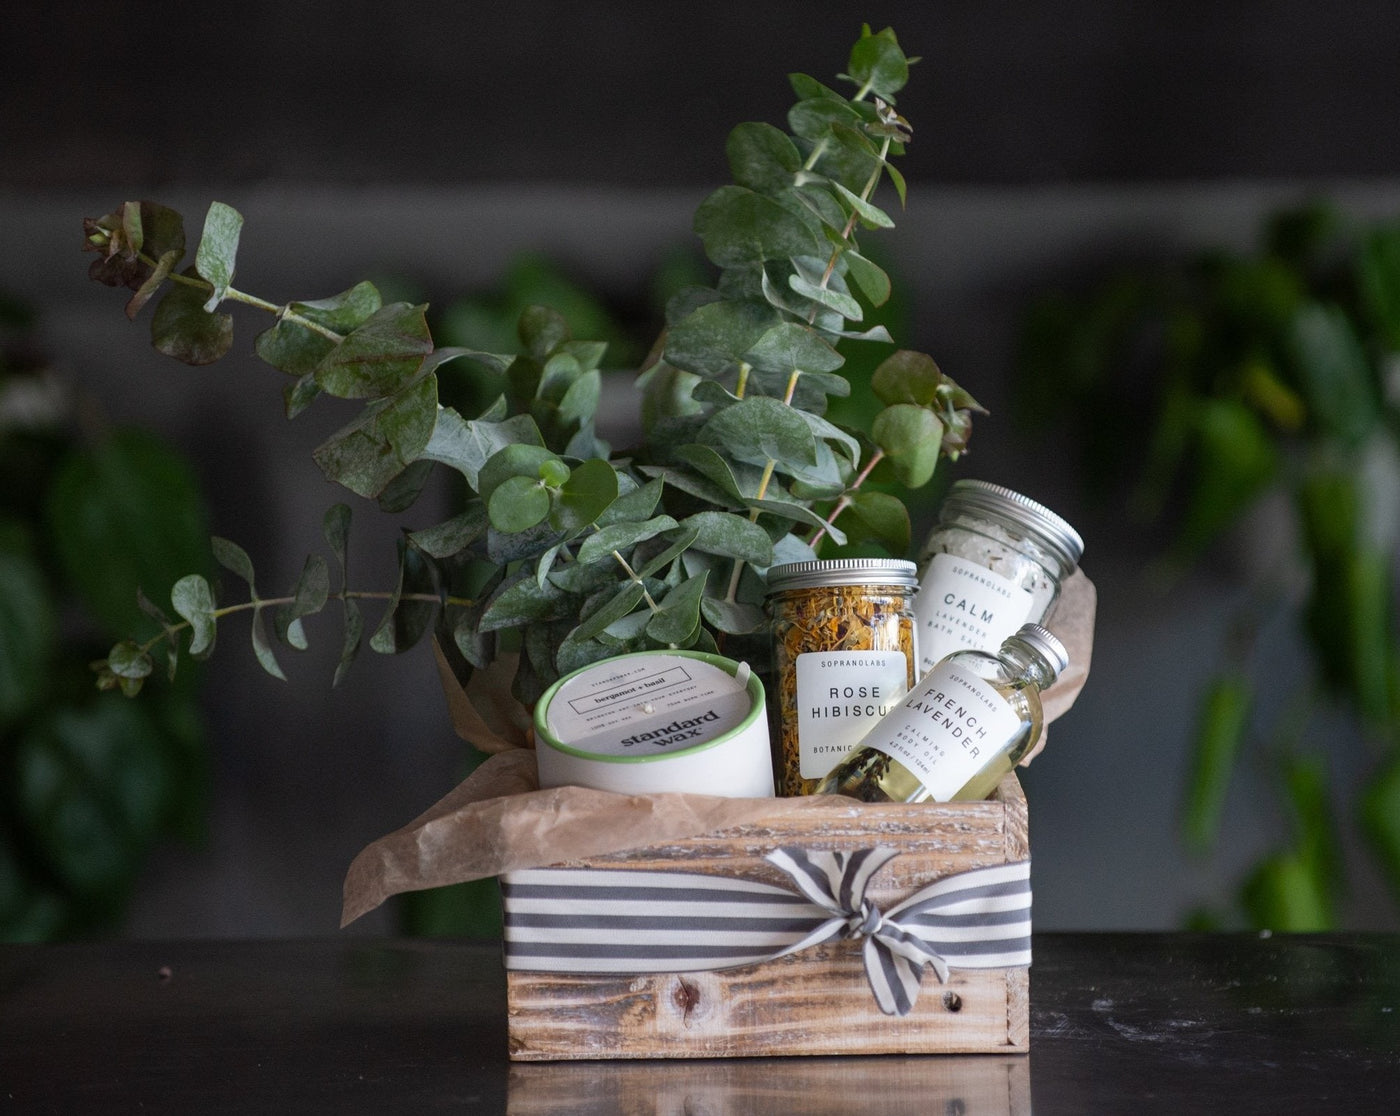 Spa Bounty is a Wooden gift box Filled with body oil, bath salts, botanical steam, standard wax candle, and a bunch of eucalyptus.